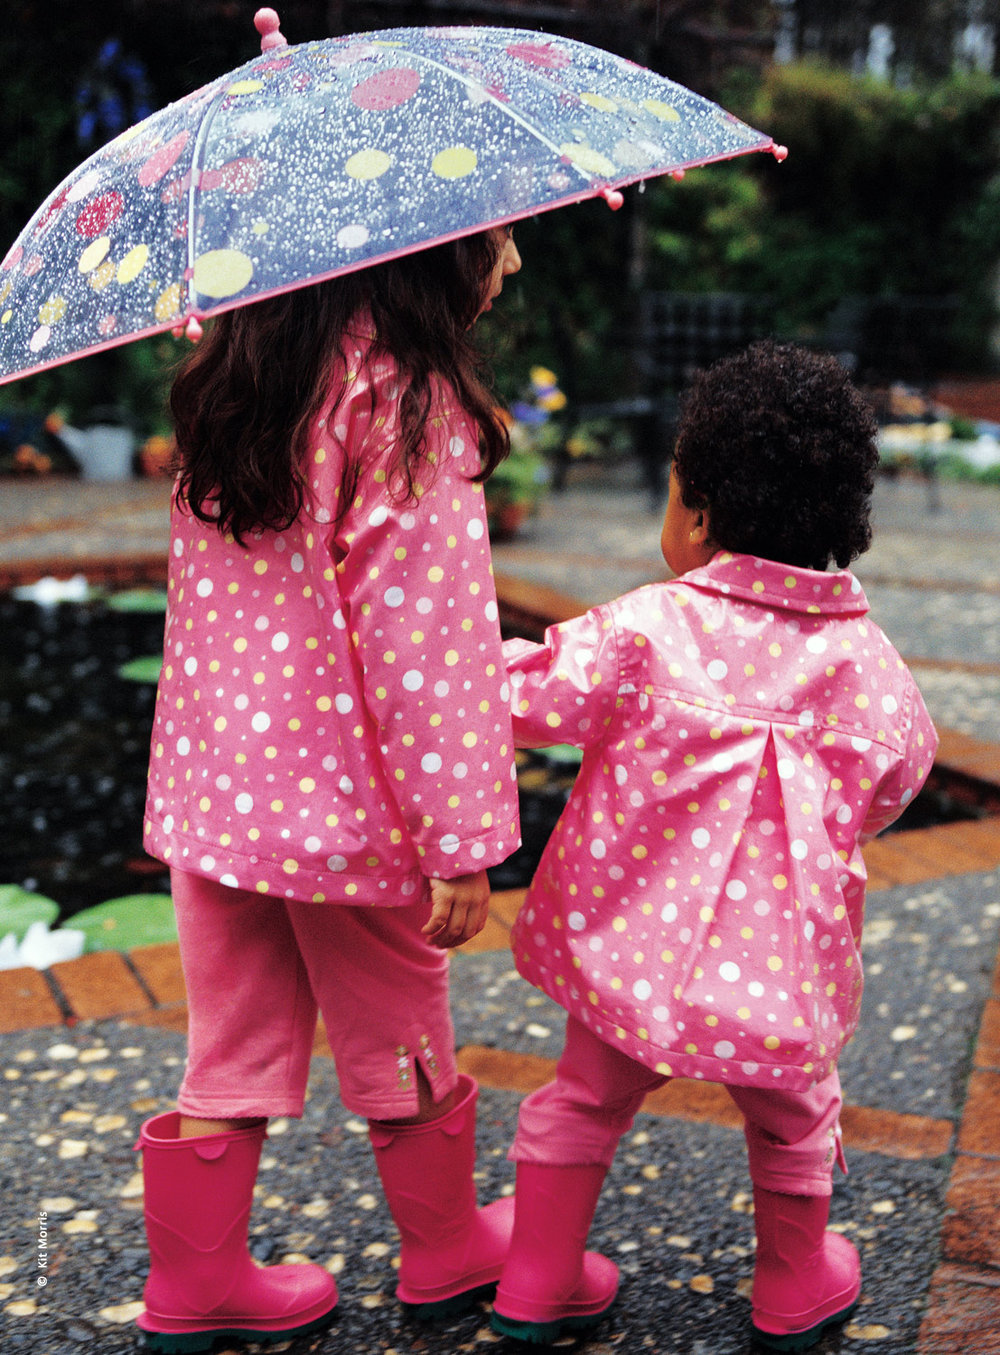 Photo of two young girls walking under a umbrella by a pond wearing matching pink and polka dot outfits by children's apparel company Gymboree